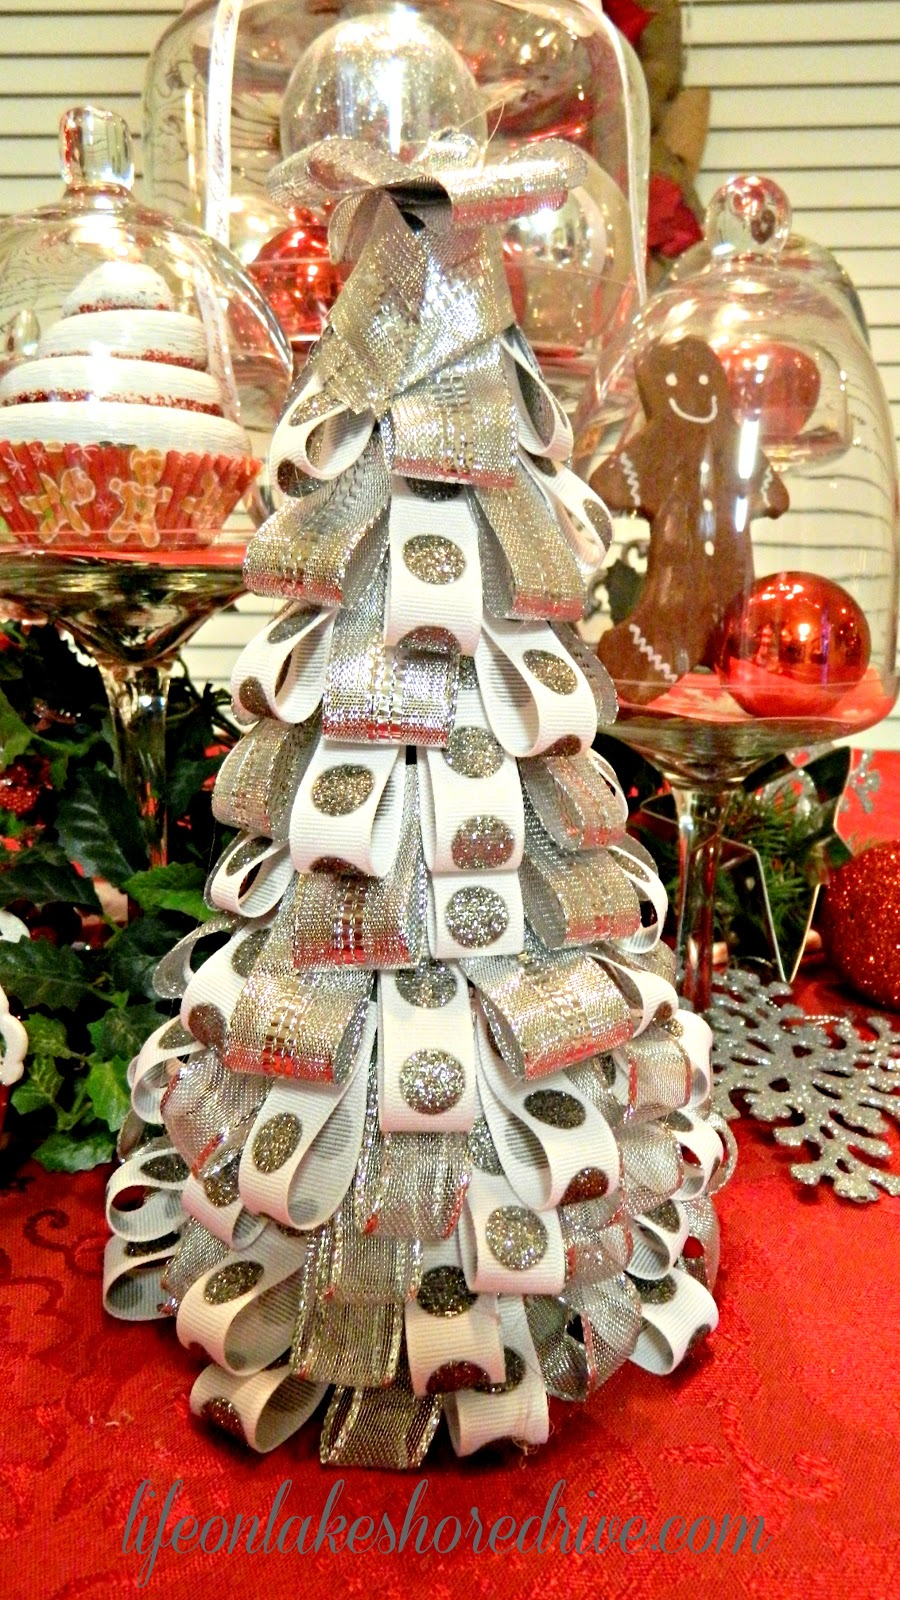 Diy Christmas Decorations For Living Room: A New Web Address And The Last Christmas Photos Of The